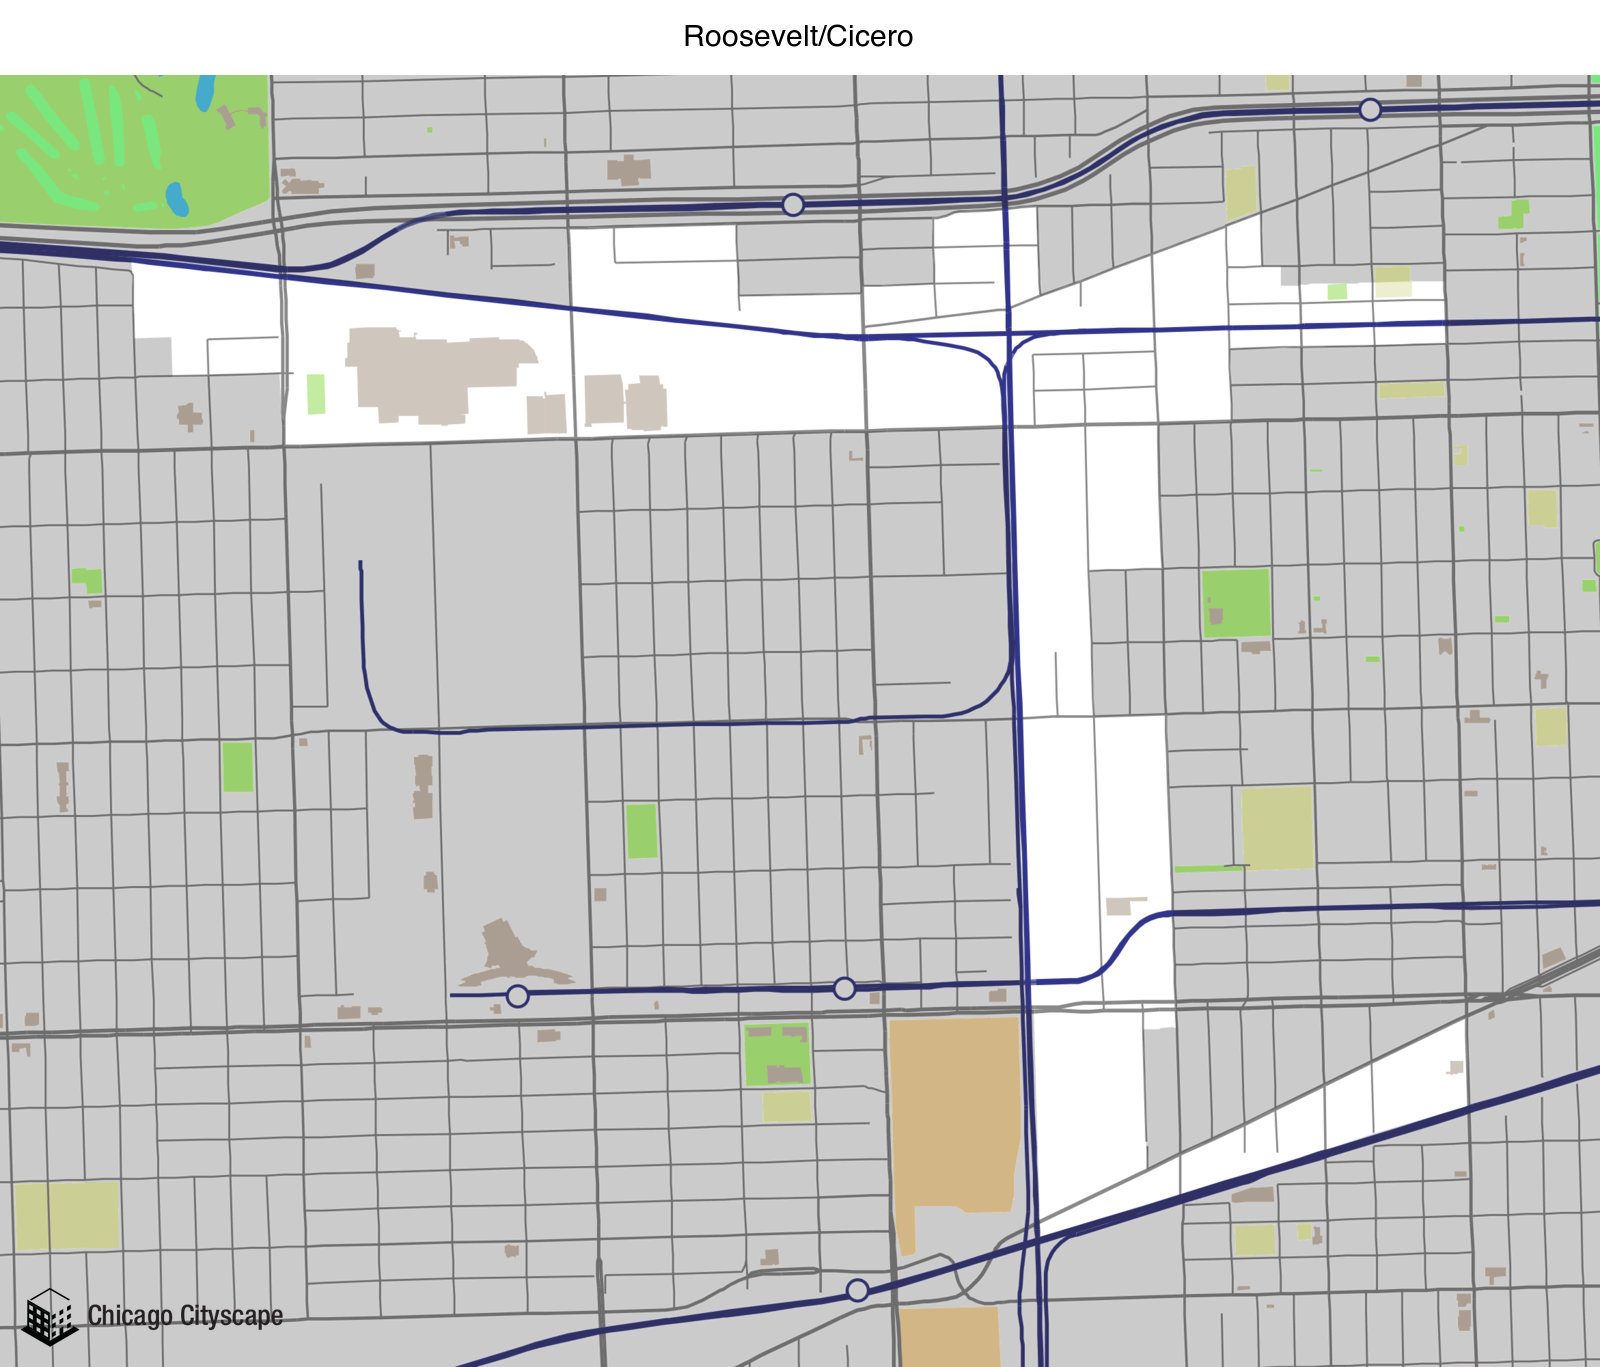 Map of building projects properties and businesses in Roosevelt